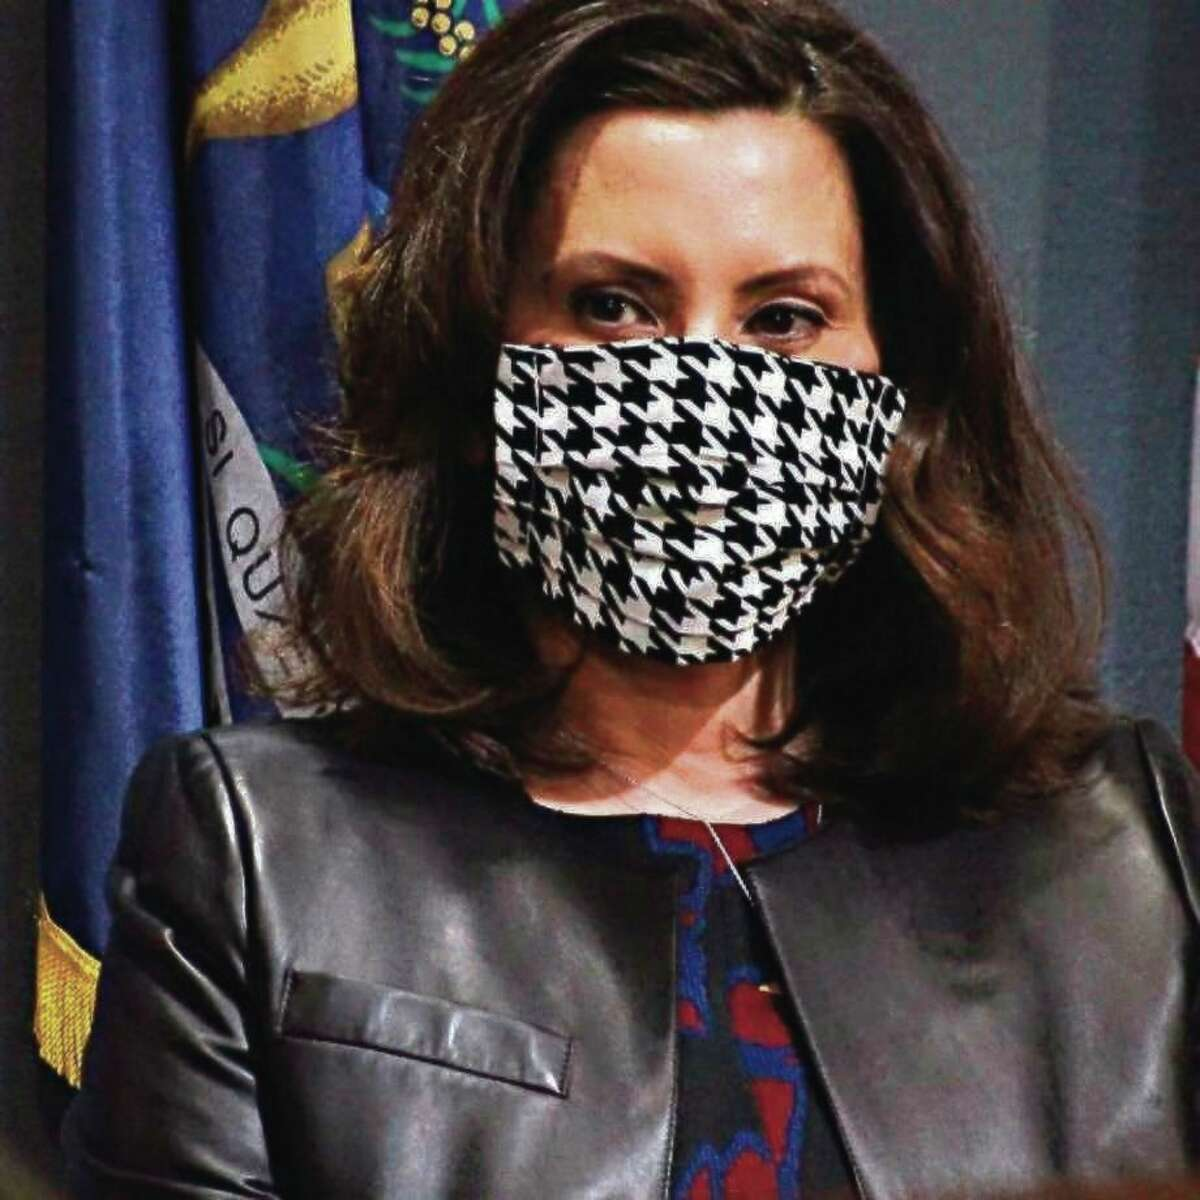 Gov. Gretchen Whitmer announced this week that 4 million free masks will become available to protect Michigan's residents from COVID-19. (AP Photo)